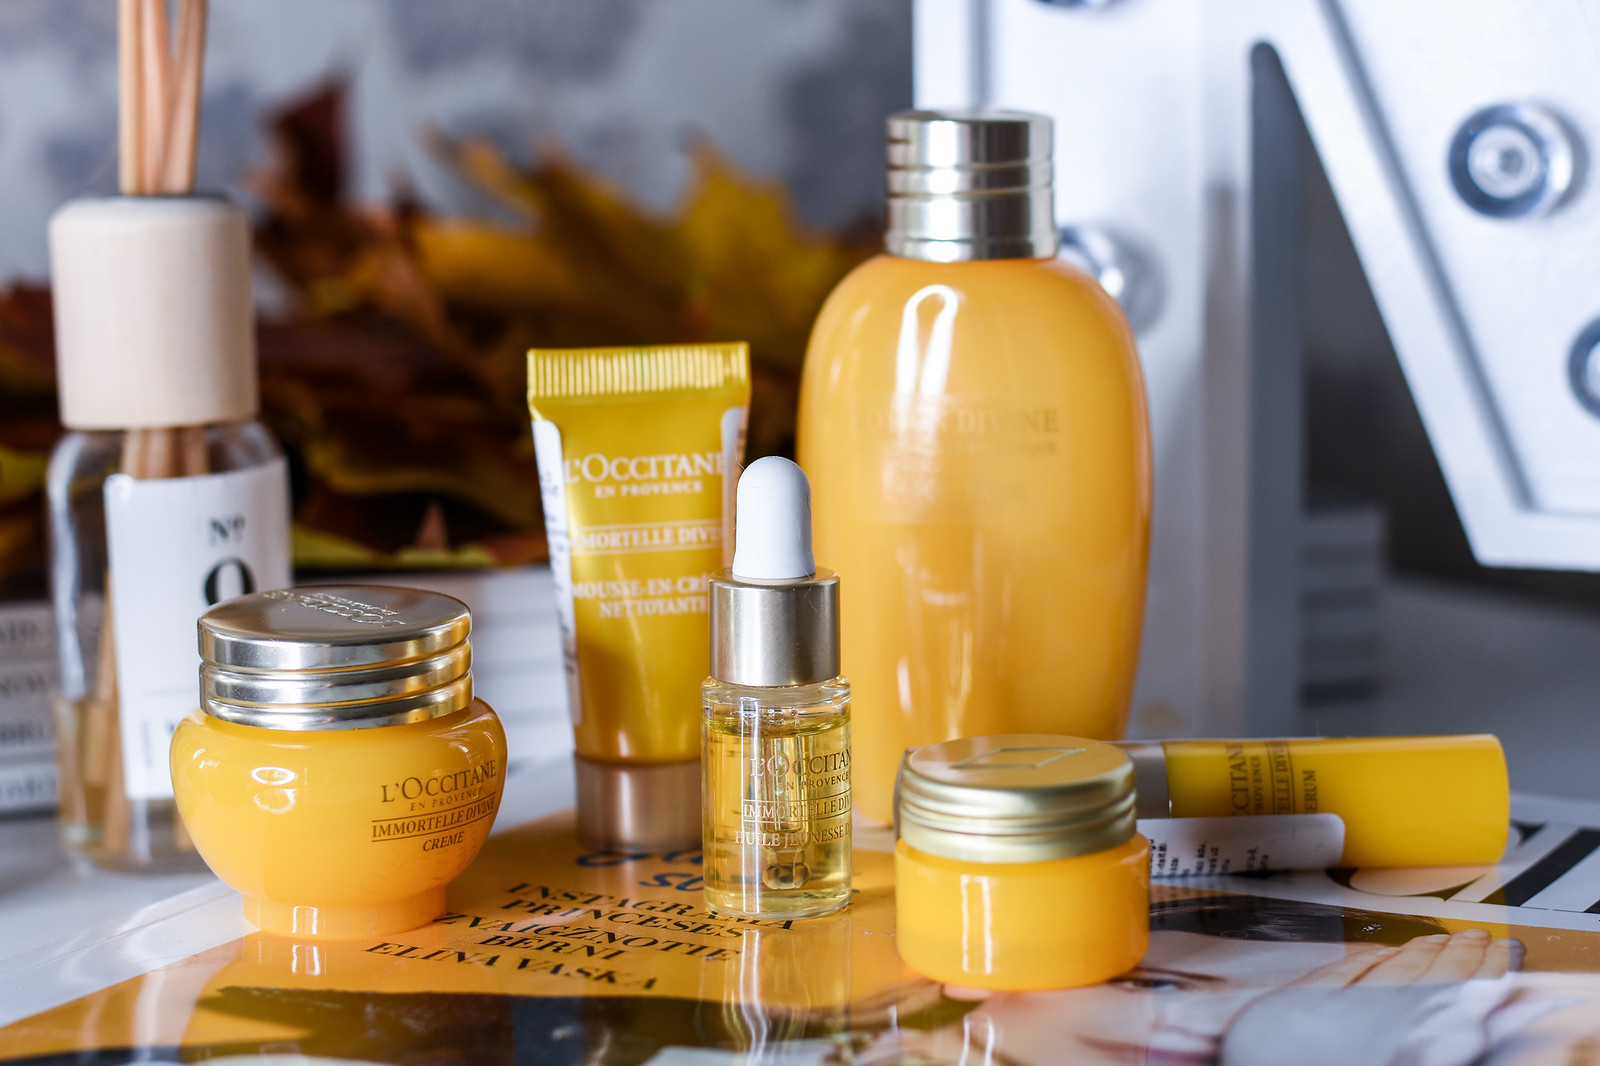 LOccitane Imortelle Divine collection review